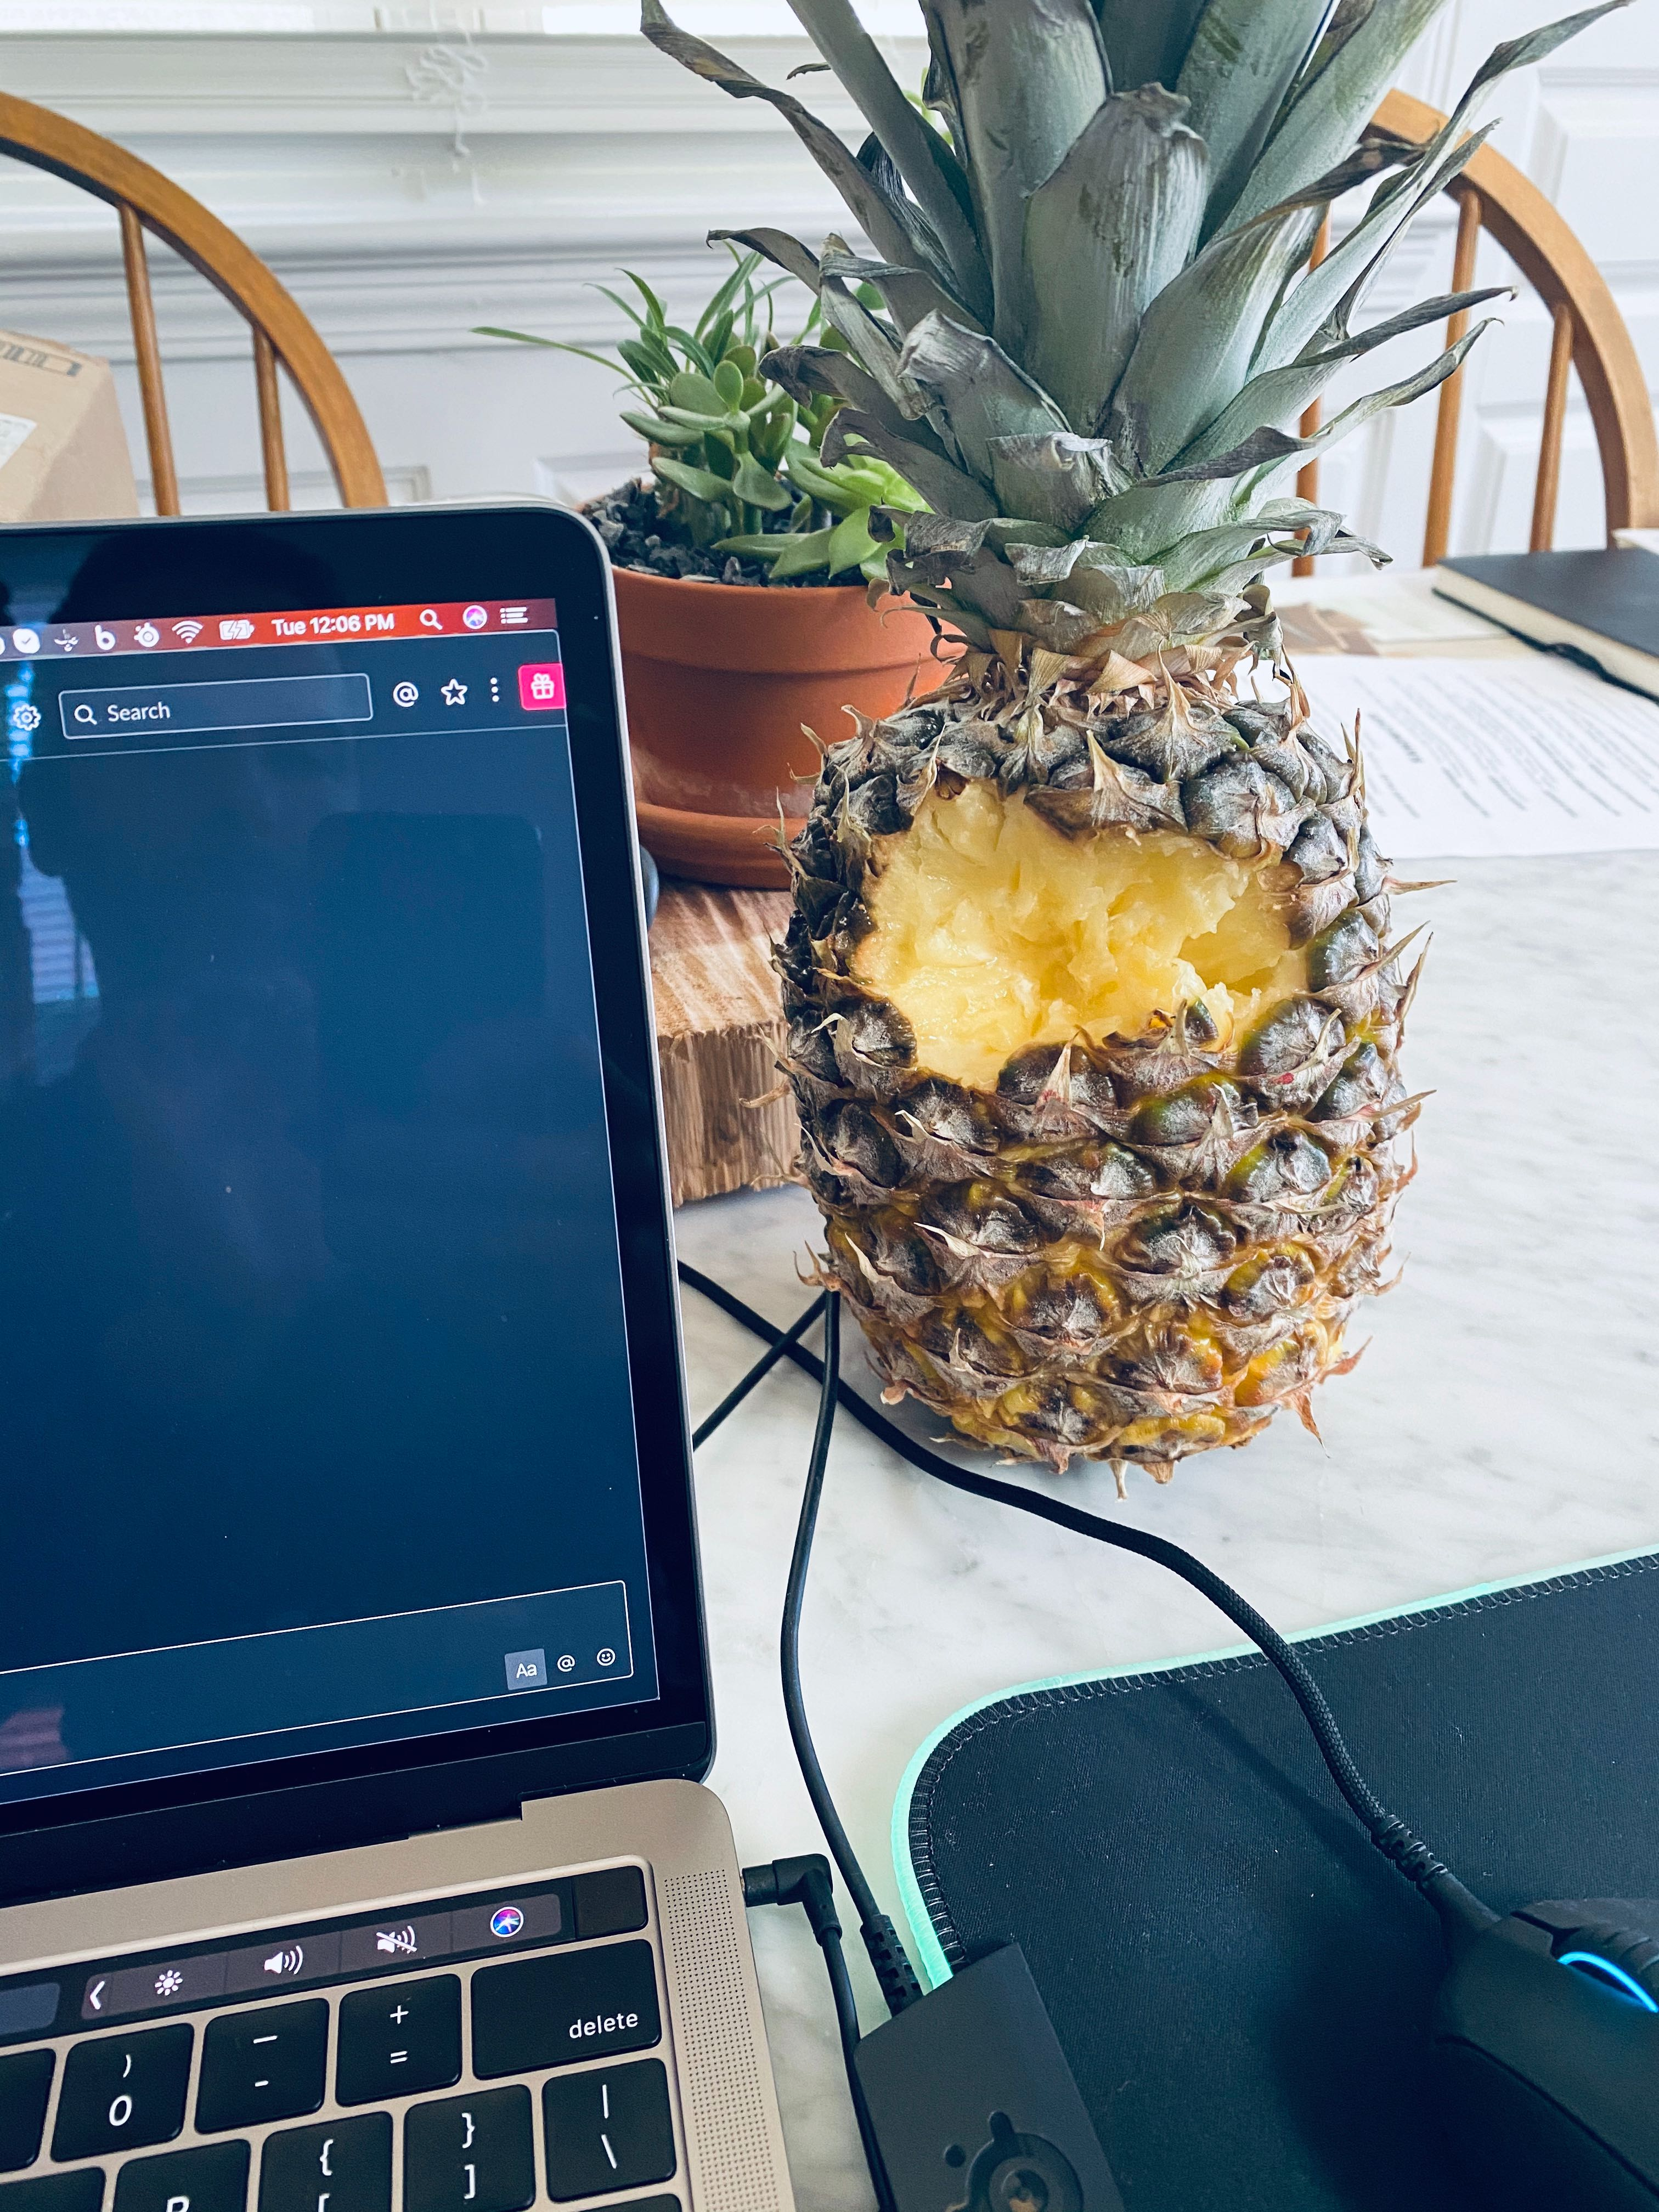 A pineapple with several chunks missing, sitting on a table next to a laptop, mouse, and mousepad